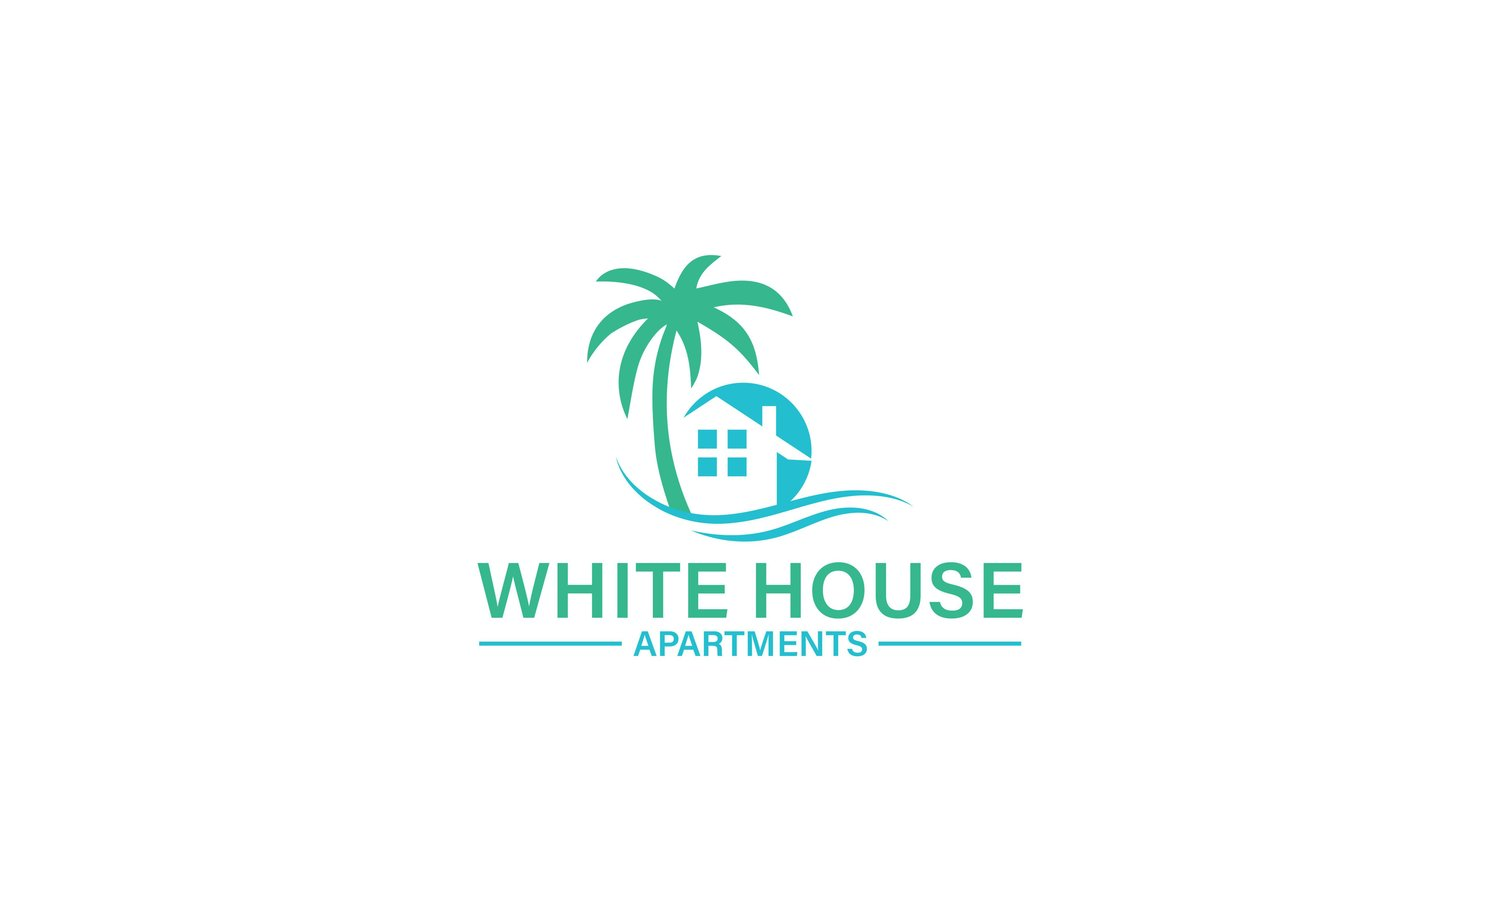 White House Apartments